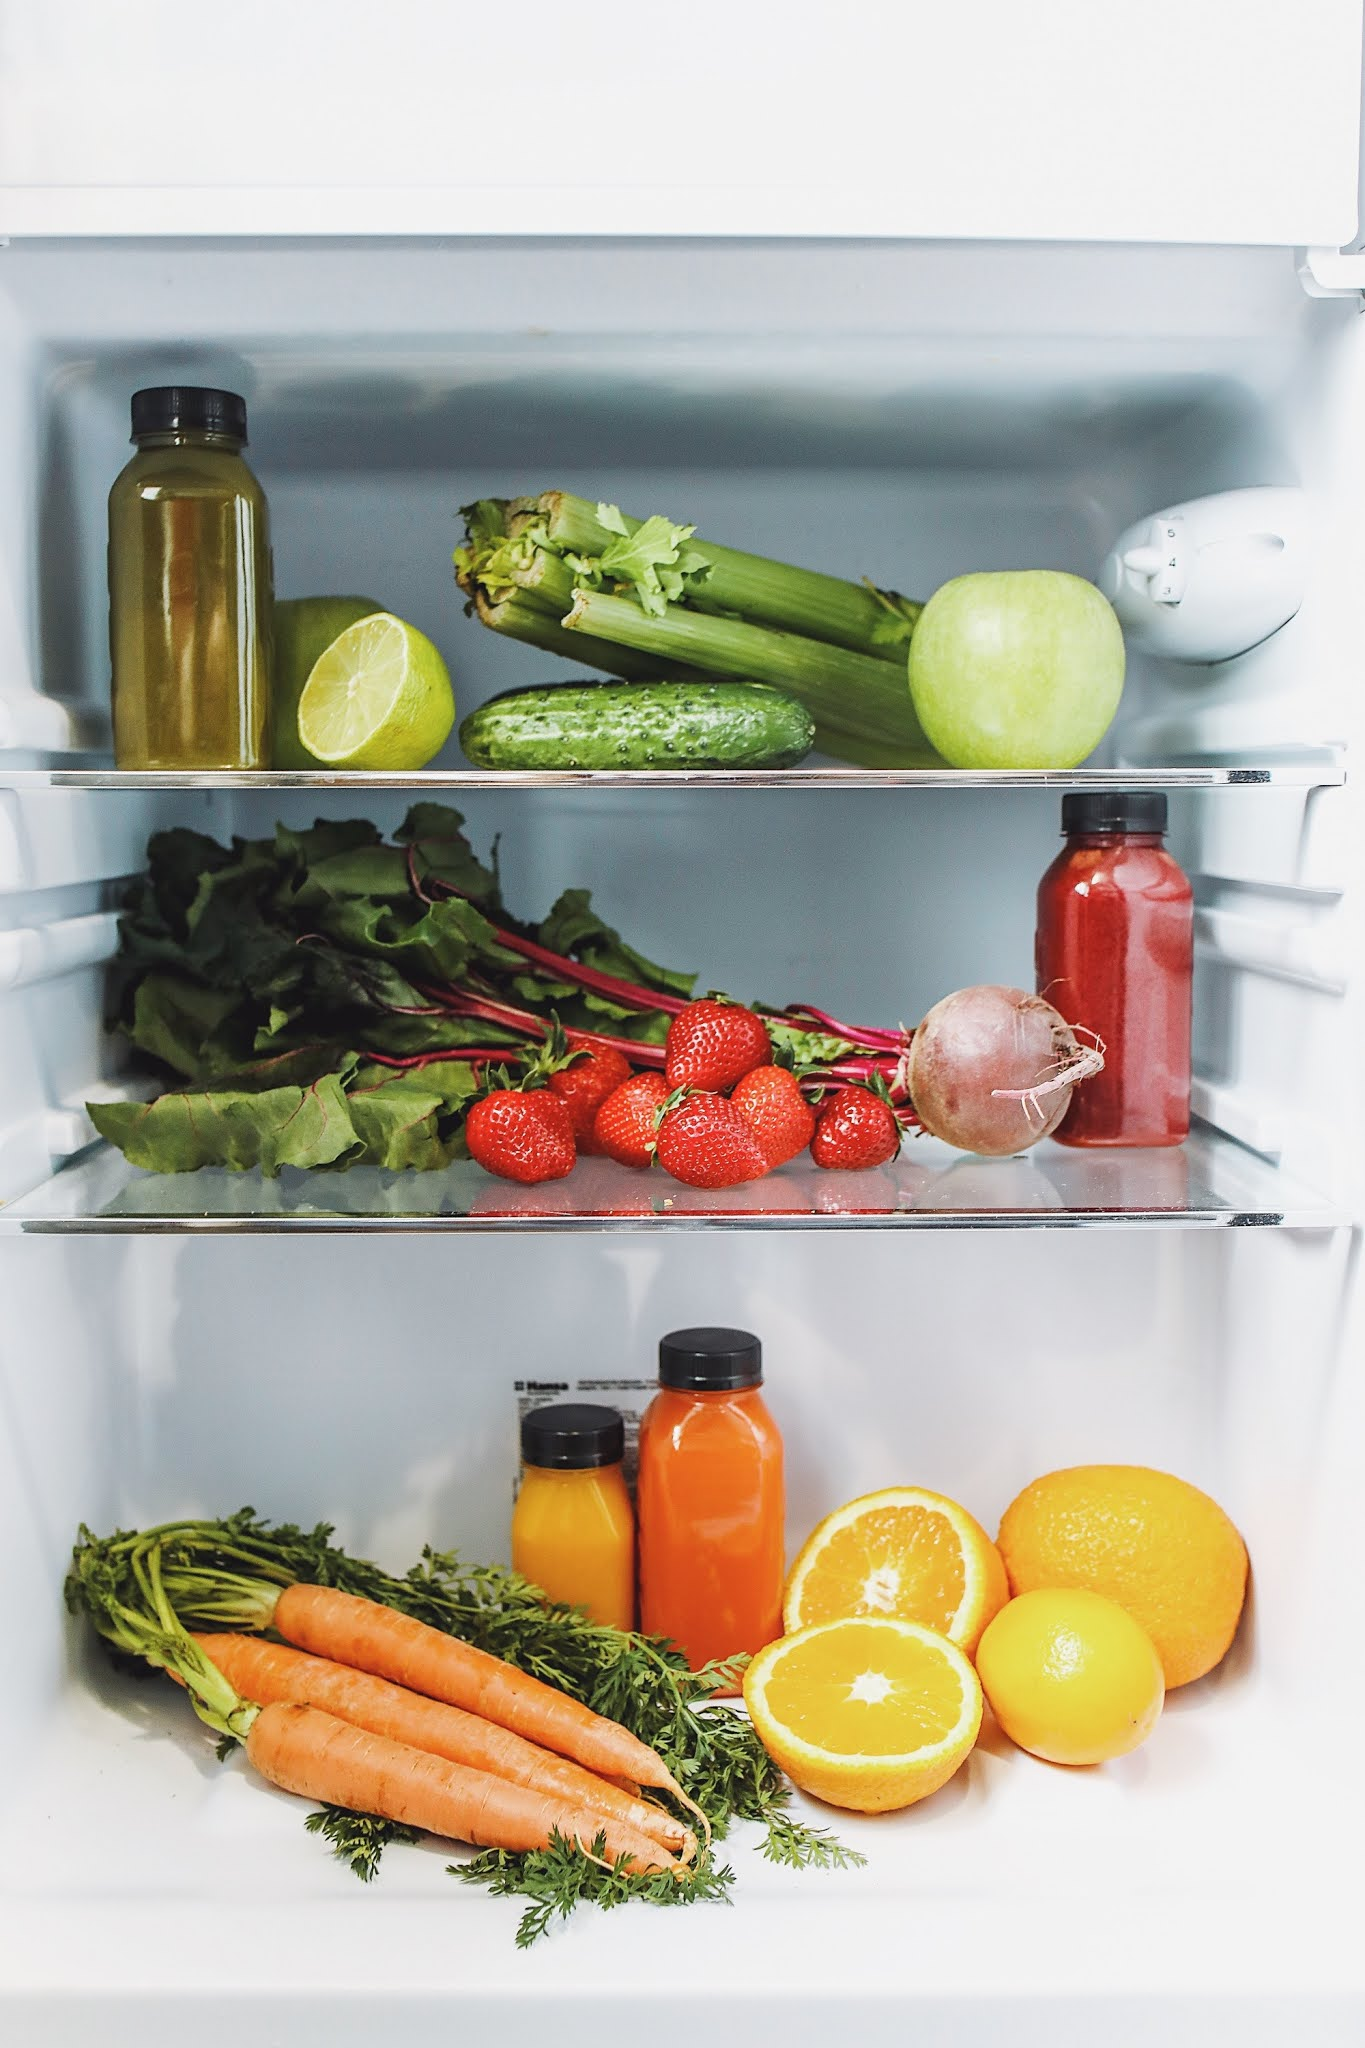 Healthy Vegetables and Fruits Juices for lockdown